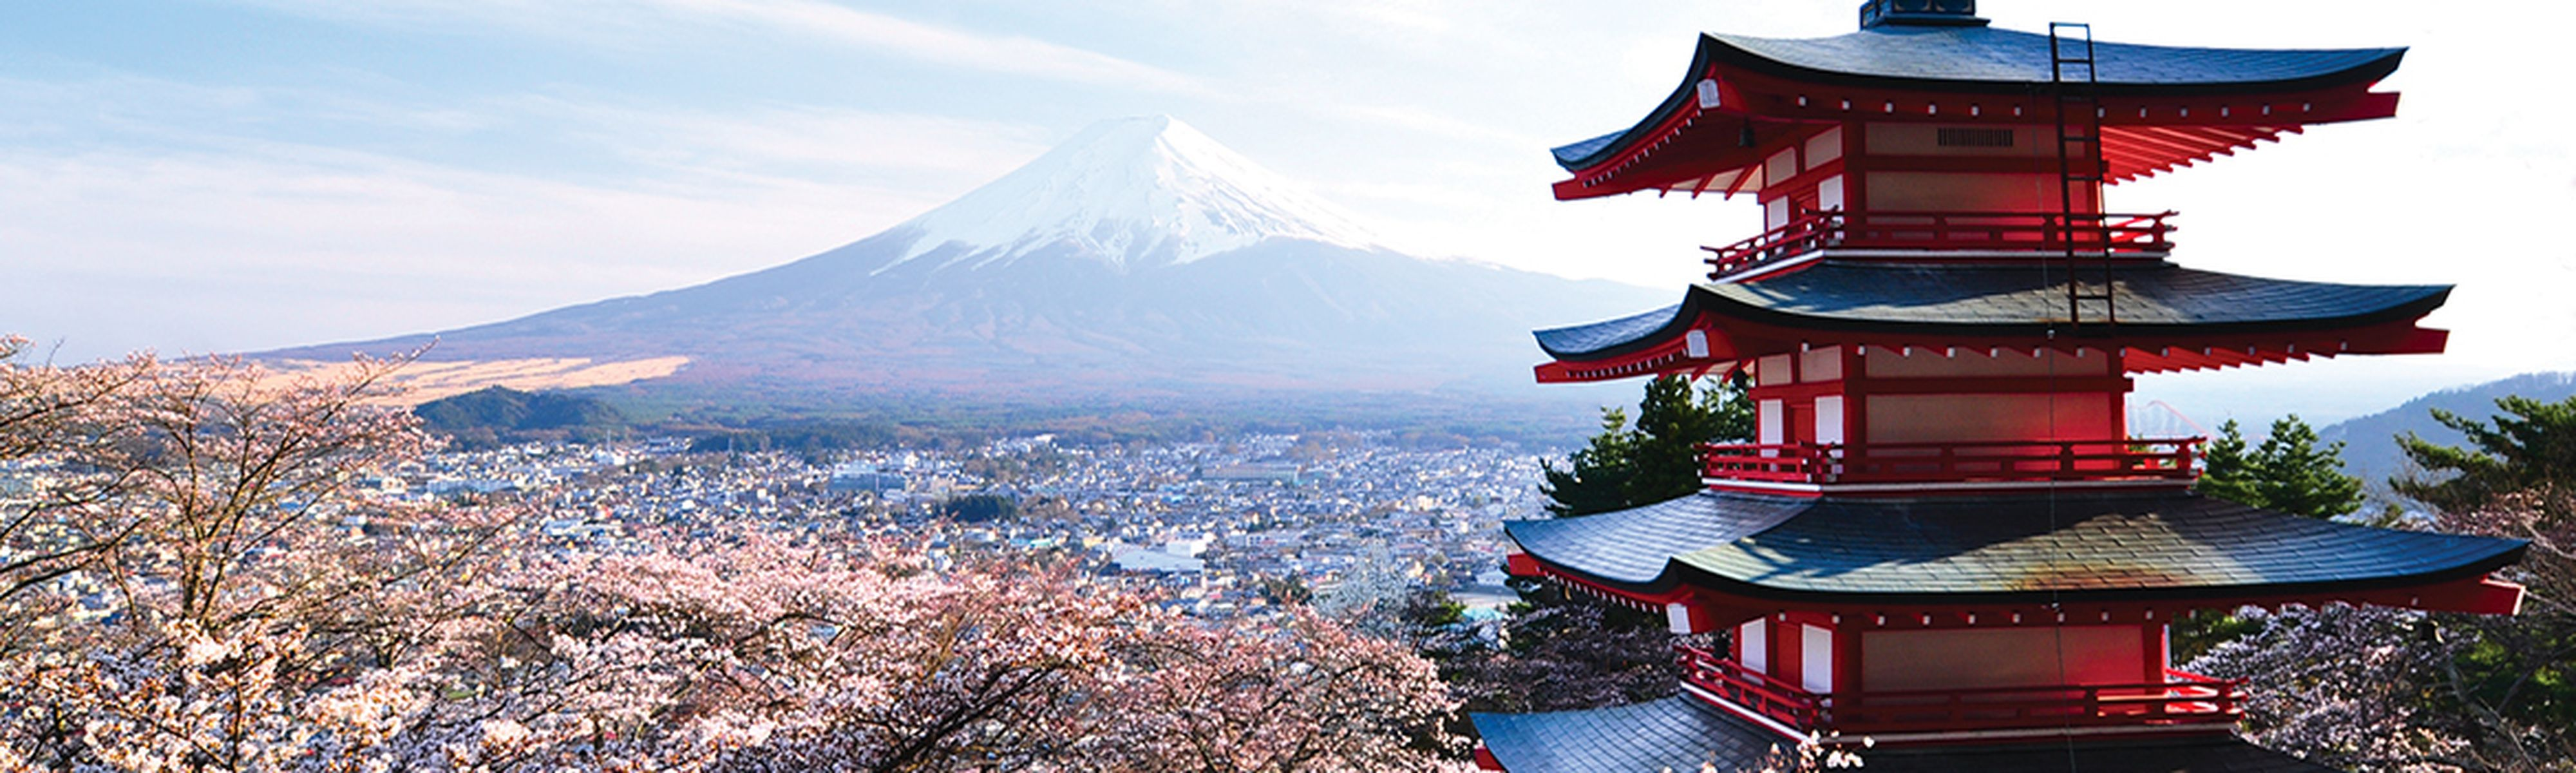 Chureito Pagoda and Mt. Fuji in spring with cherry blossoms